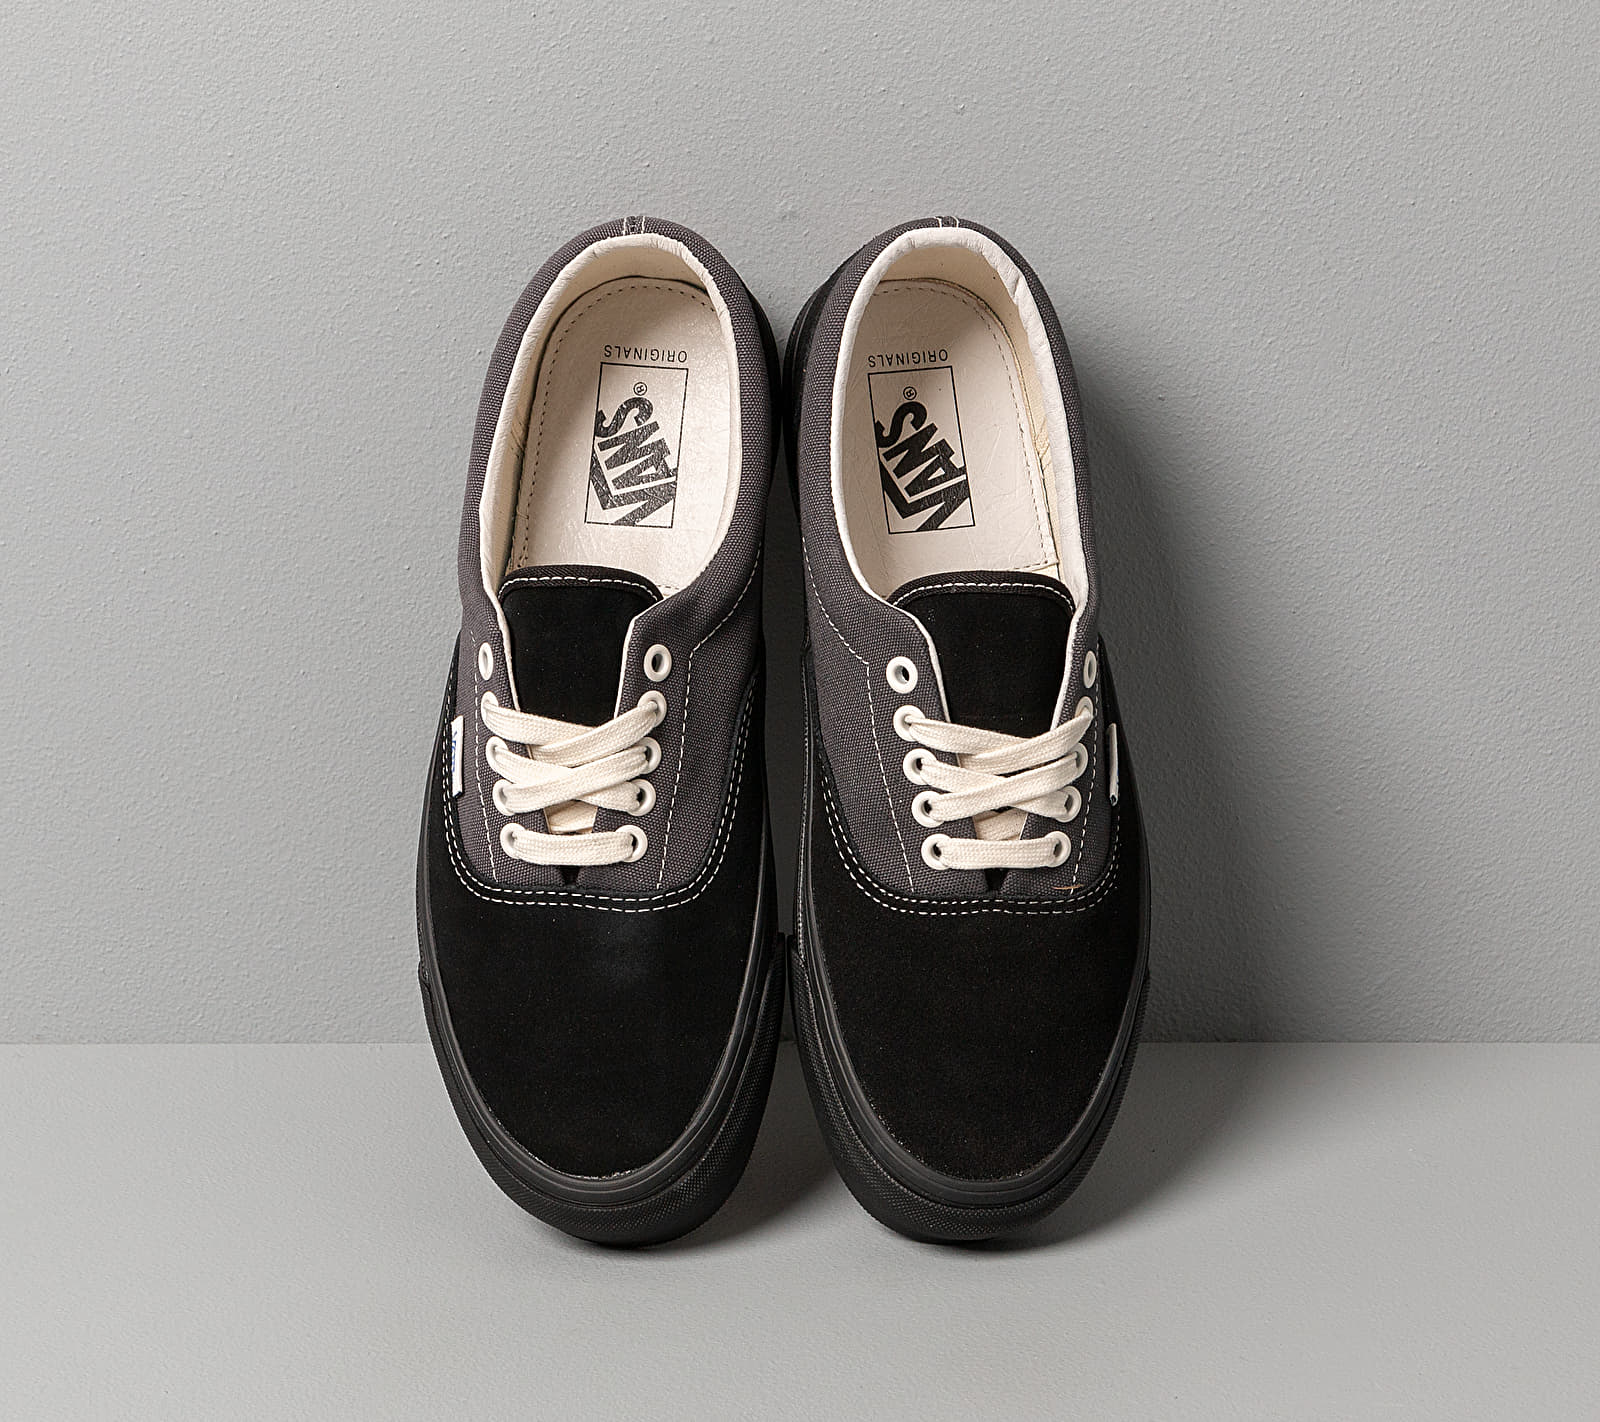 Vans Og Era LX (Suede/ Canvas) Black/ Forged Iron